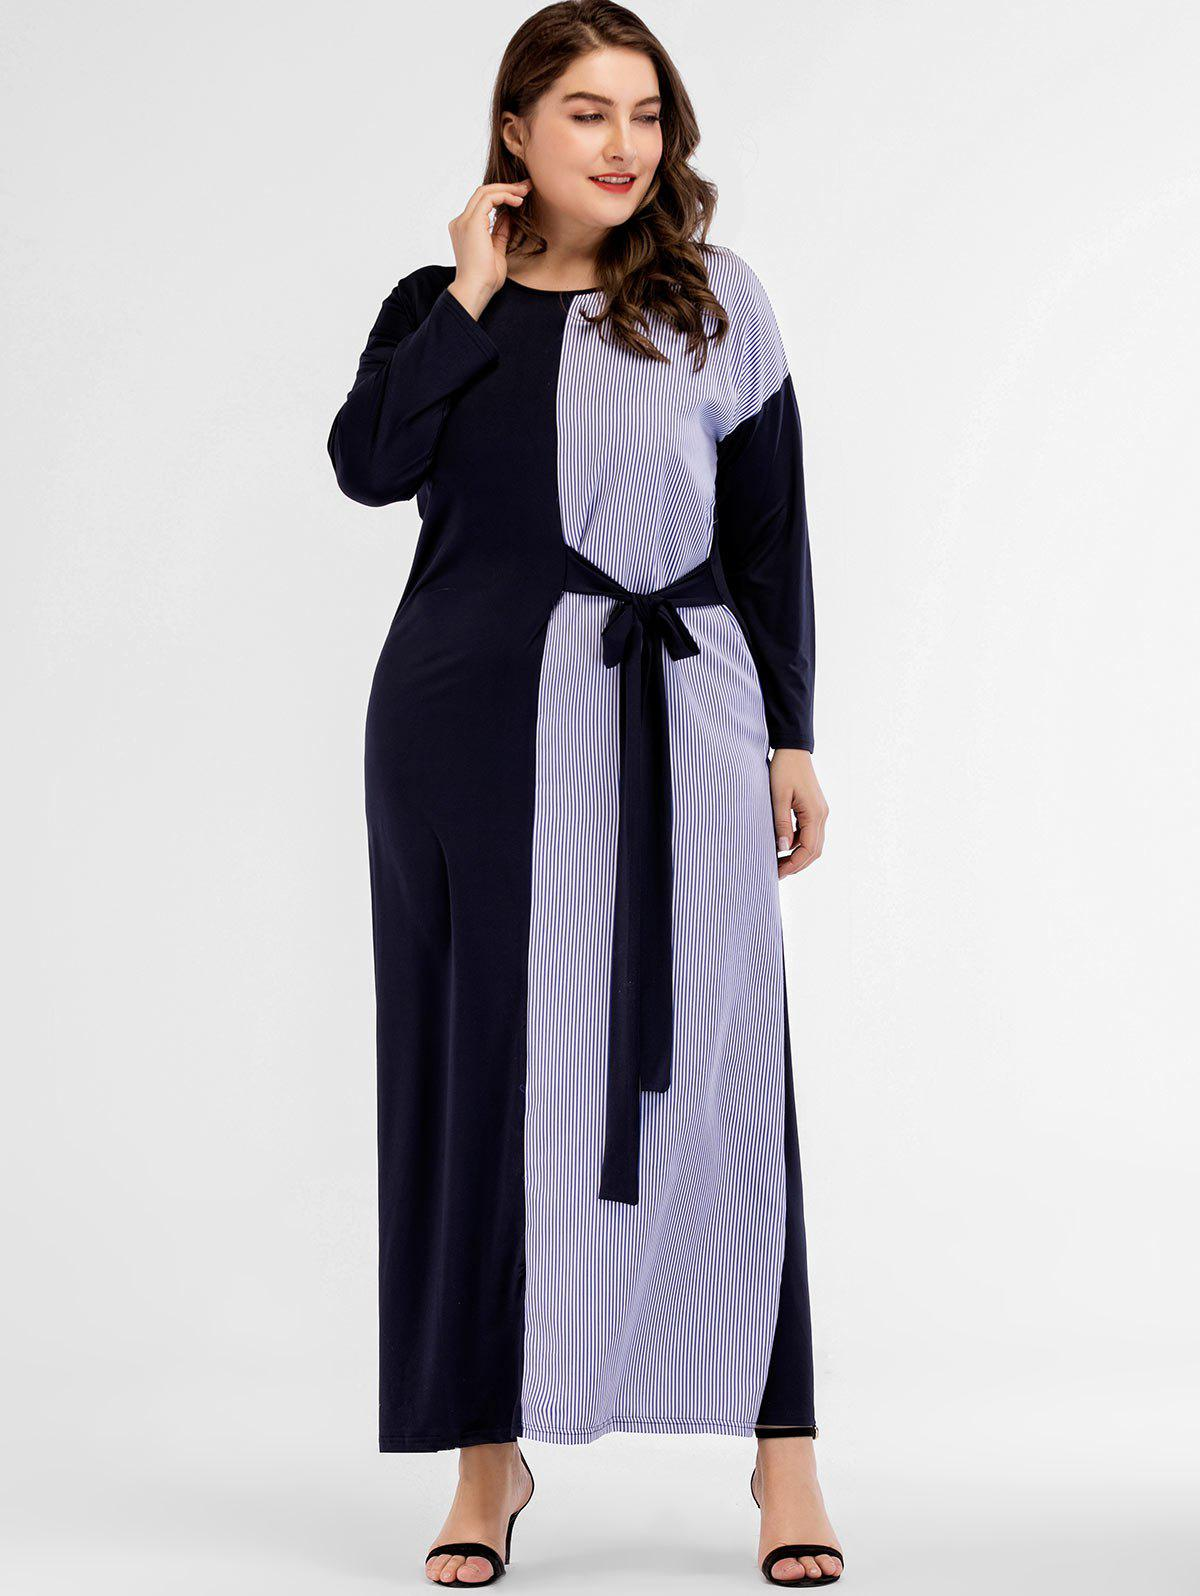 Buy Vertical Stripe Plus Size Long Sleeve Dress